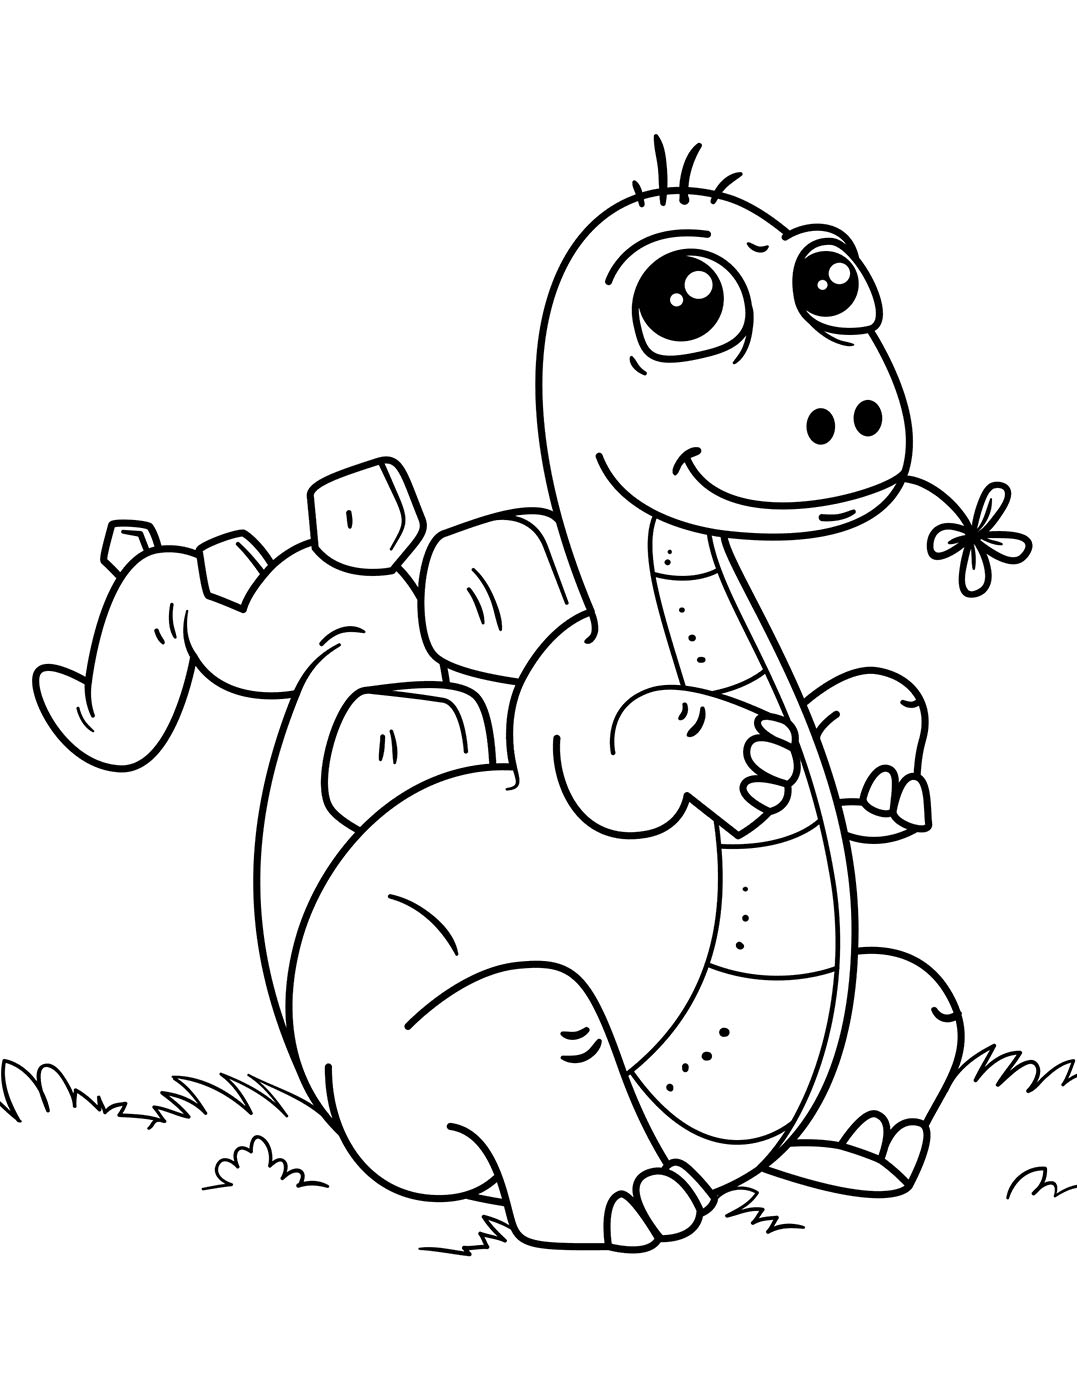 Dinosaurs To Color For Kids Ba Dinosaurs Kids Coloring Pages